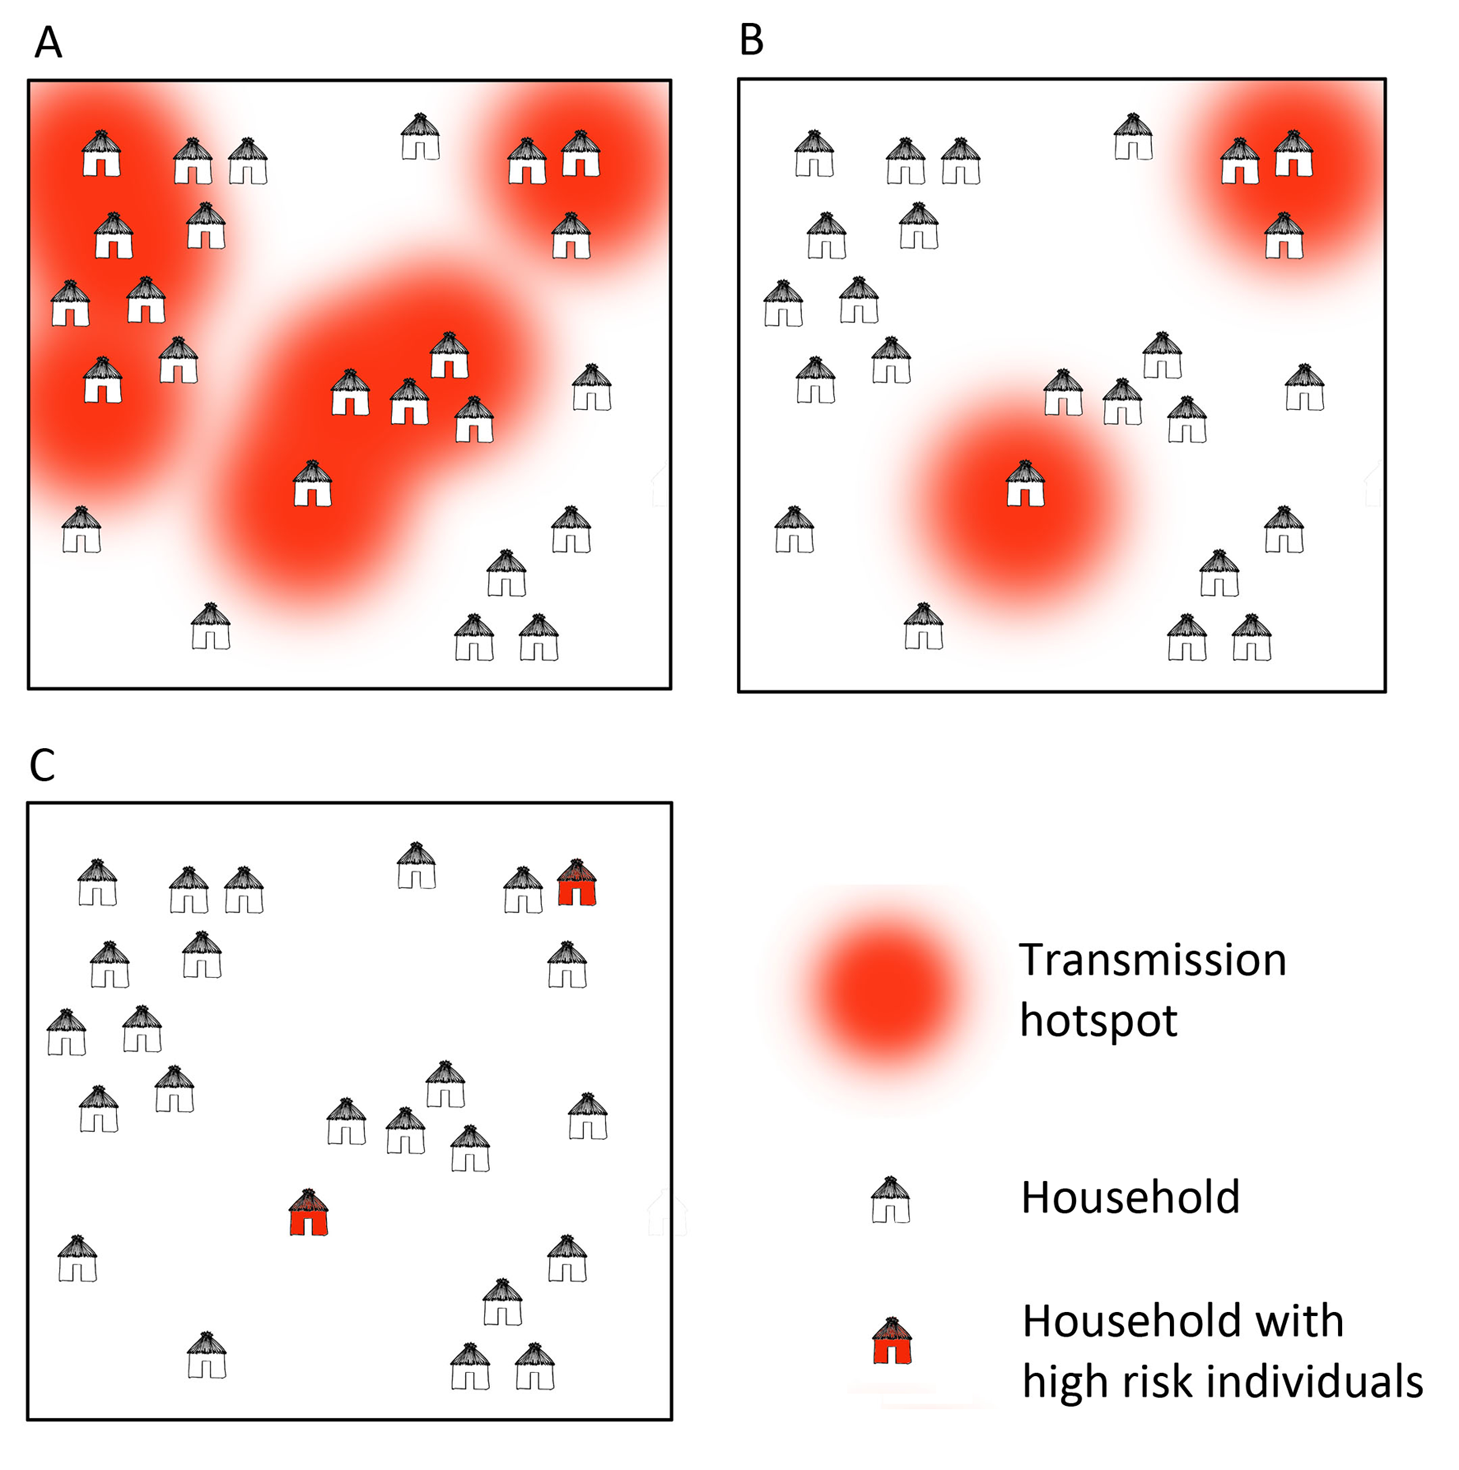 Microepidemiology of malaria in villages of varying transmission setting.